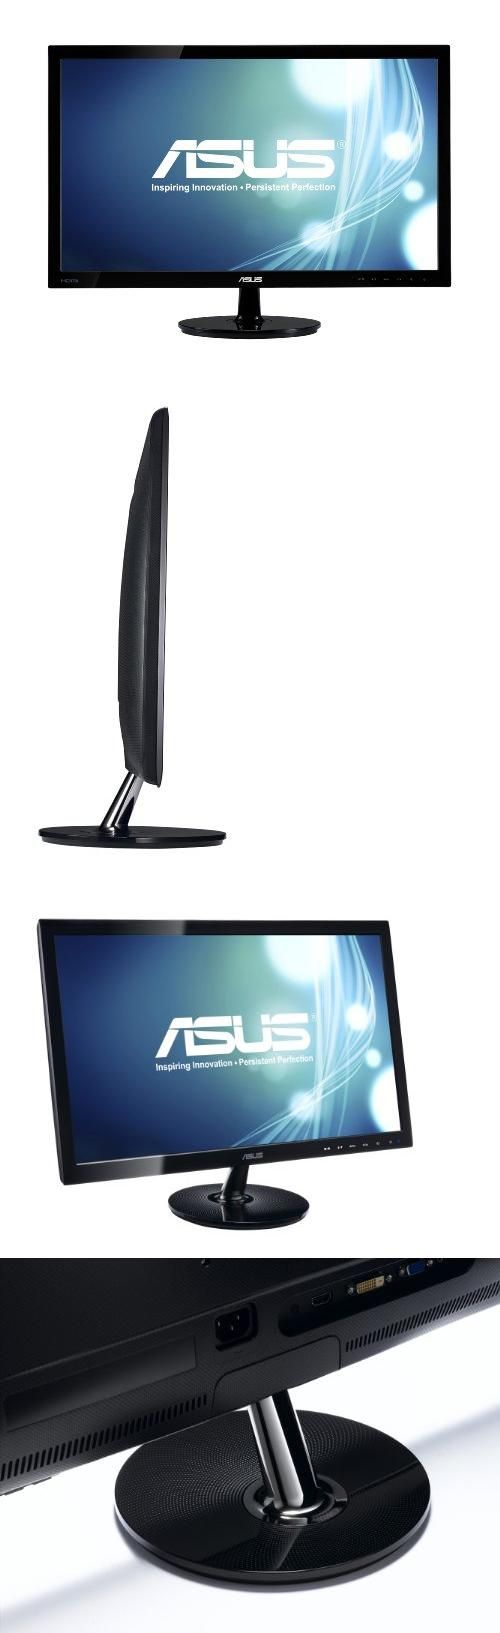 ASUS VS228H-P 22-Inch Full-HD 5ms LED-Lit LCD Monitor, ASUS VS228H-P - 21.5 1920x1080 Full HD - Slim Form Factor with Built-in Power Adapter - Corporate Stable Model and EPEAT Gold Certified - LED Backlight with 50,000,000:1 ASCR.Analog: 1x VGA, Digital:..., #Computers, #Monitors, $130.64 http://computer-s.com/monitors/asus-vs228h-how-did-the-asus-lcd-monitor-hold-up/